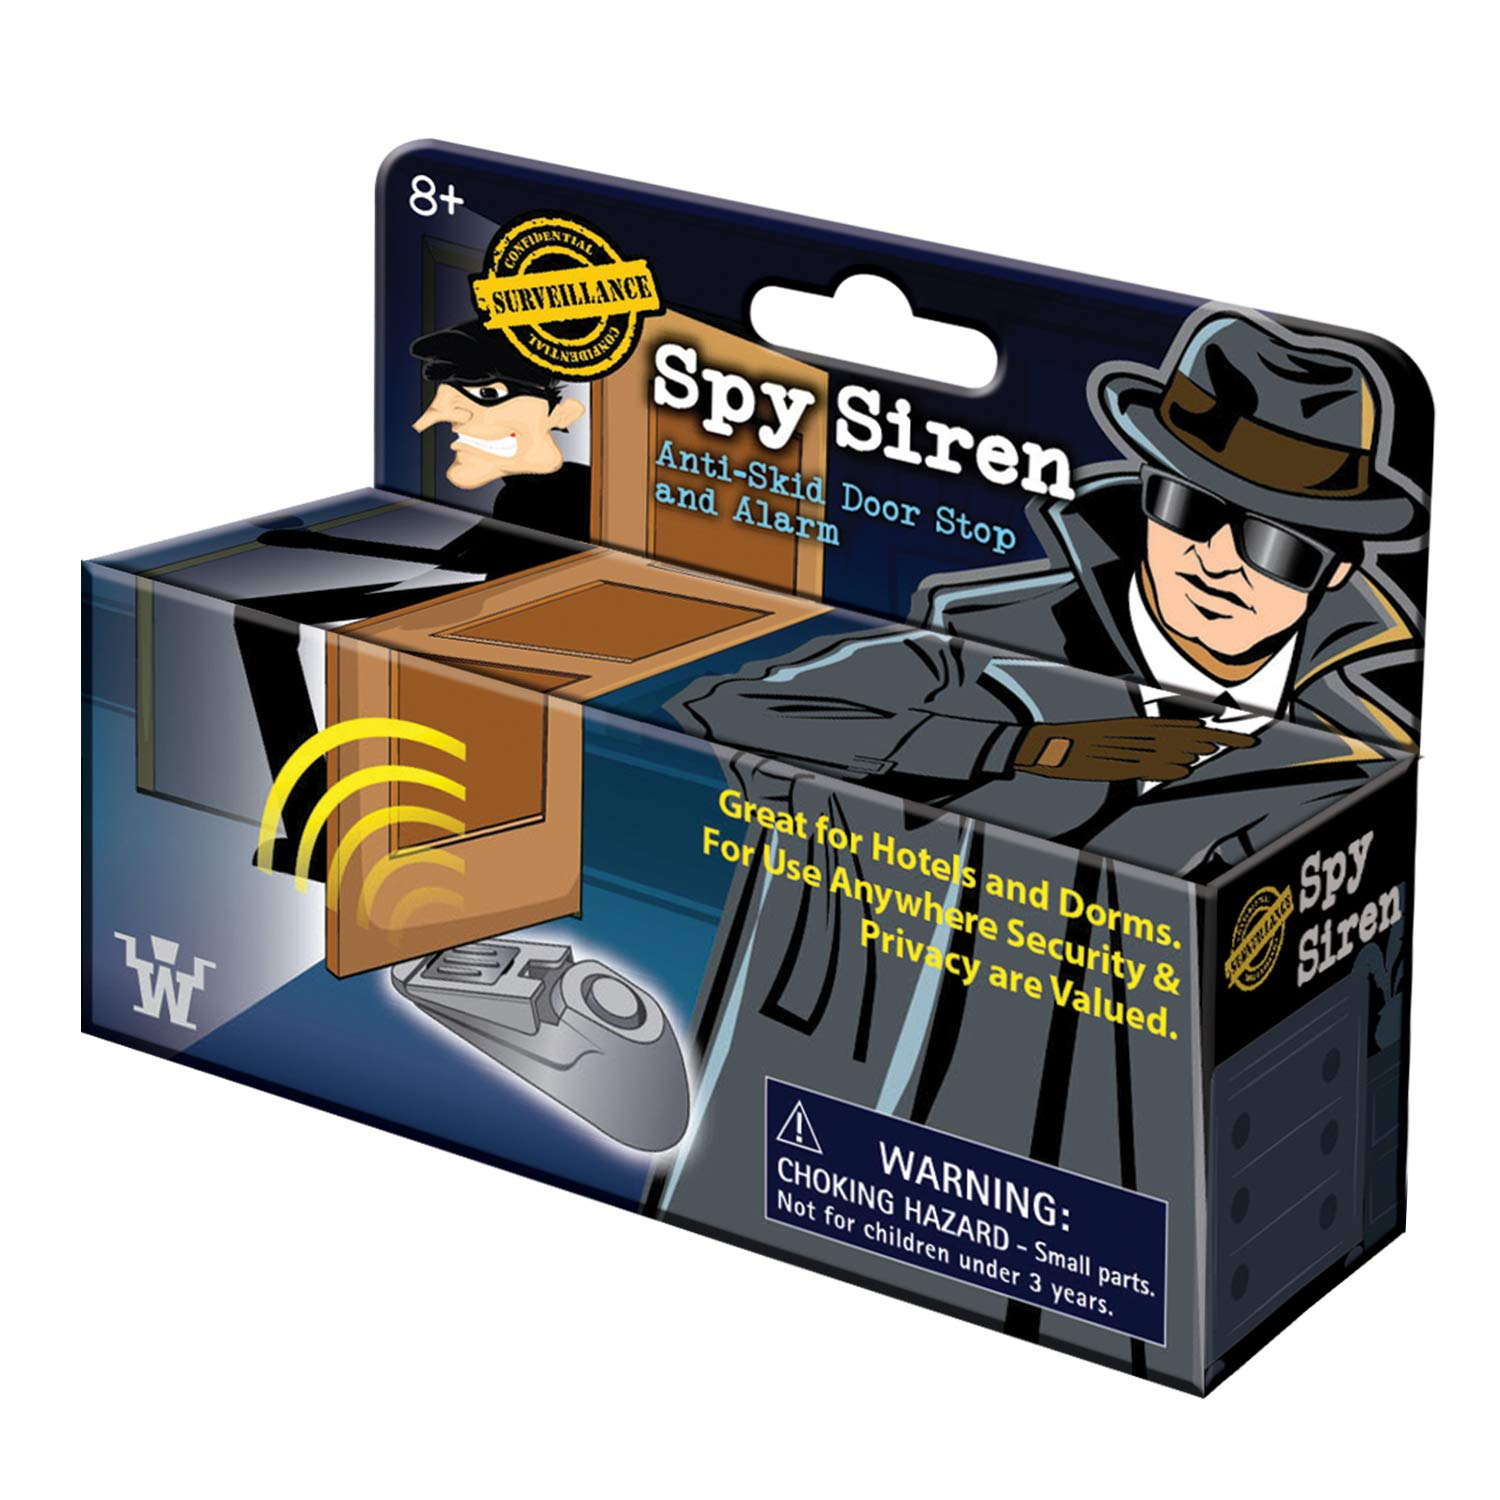 Amazon.com: Westminster Spy Siren, Anti-Skid Door Stop and ...